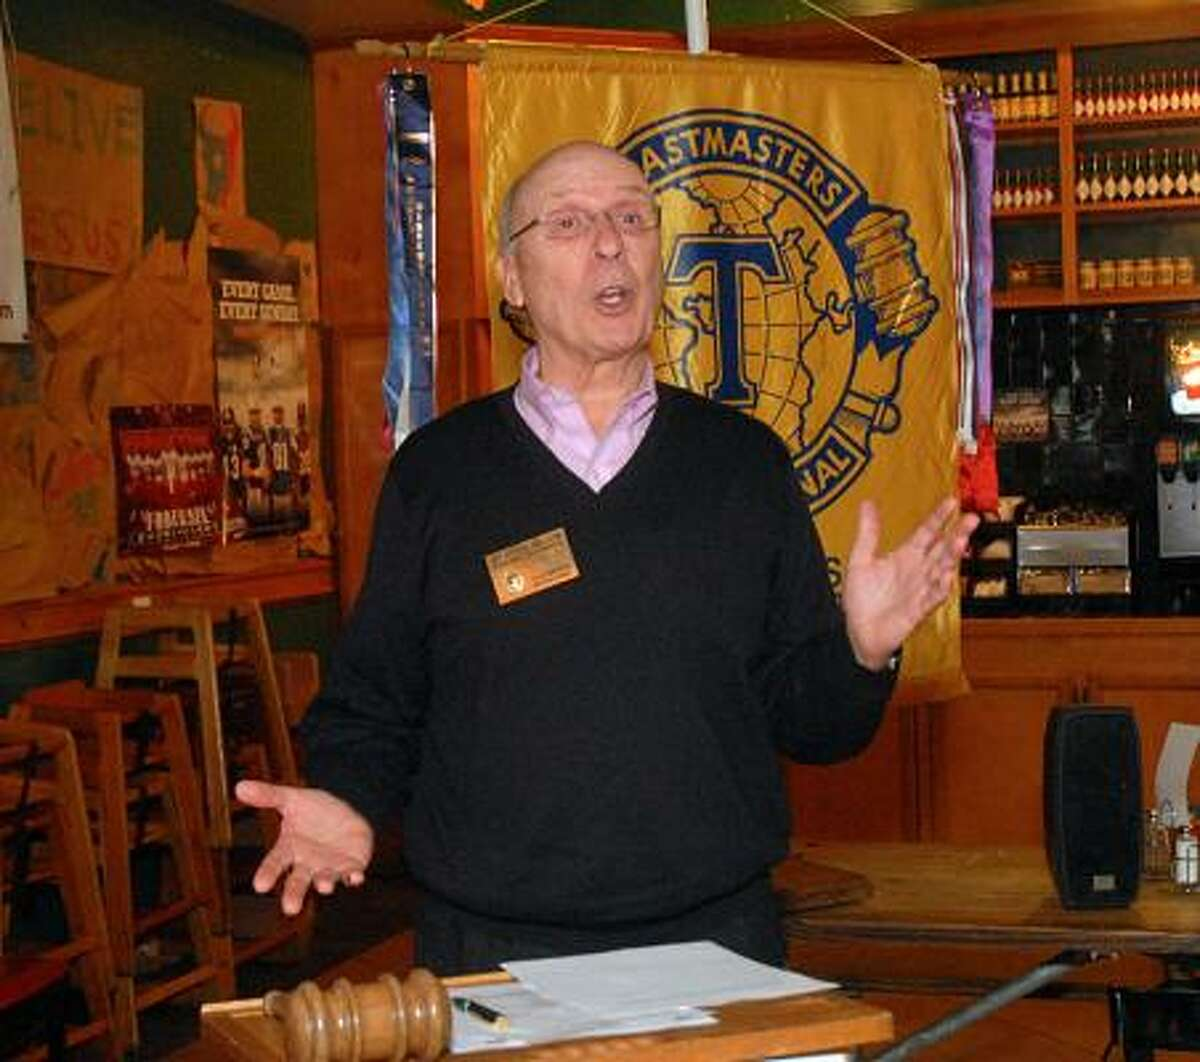 DAVID HOPPER: FOR THE CHRONICLE HEAR, HEAR: Jay Strickland, of The Woodlands, gives a humorous speech during The Woodlands Toastmaster's Club meeting at Skeeter's, 4747 Research Forest Drive. Strickland recently won accolades for most humorous speech in The Woodlands Toastmaster's Club.